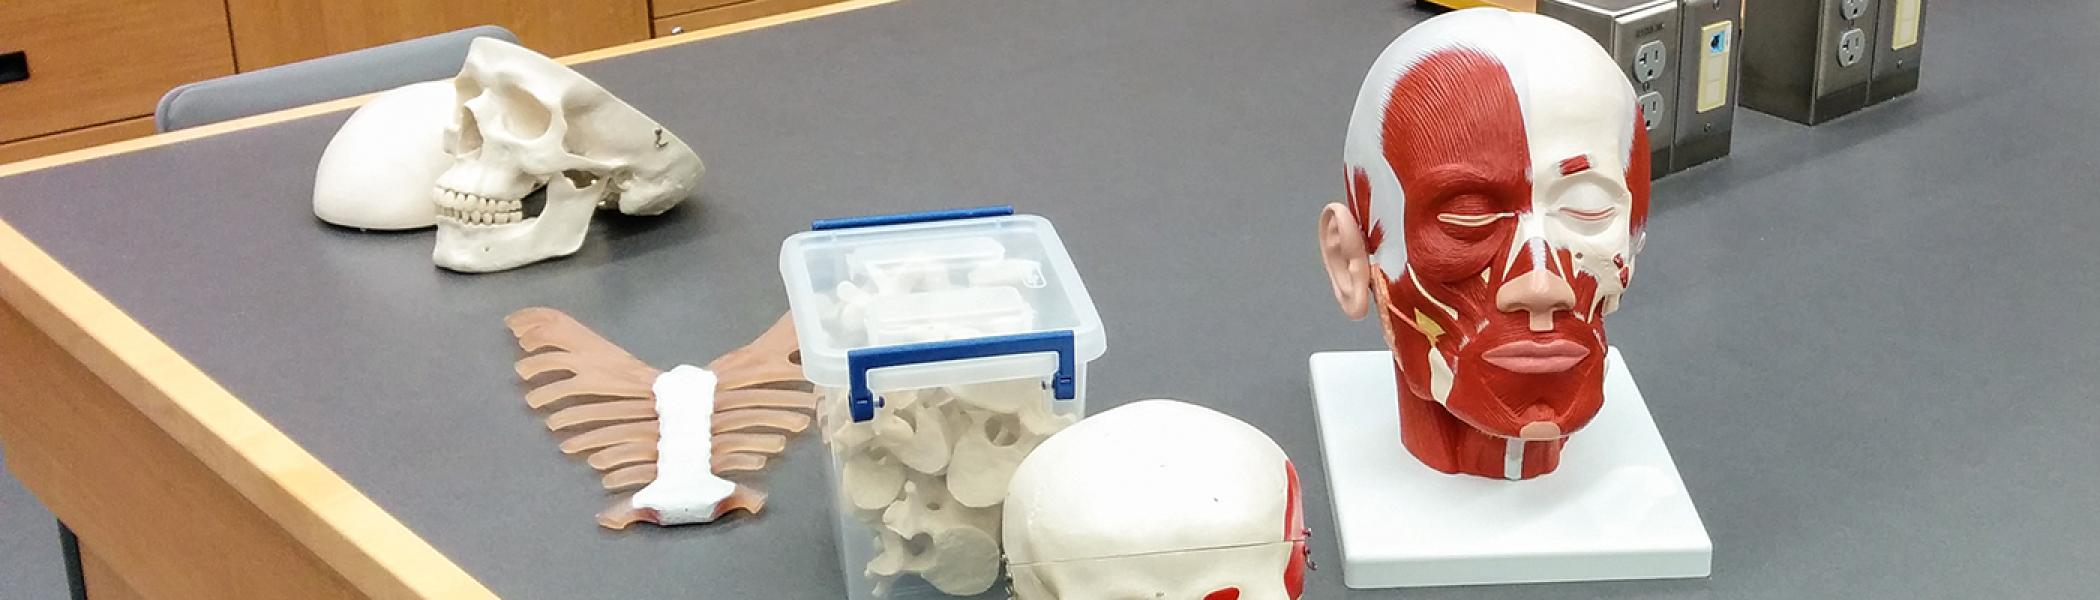 Blanched skulls and a dummy human head on a work bench